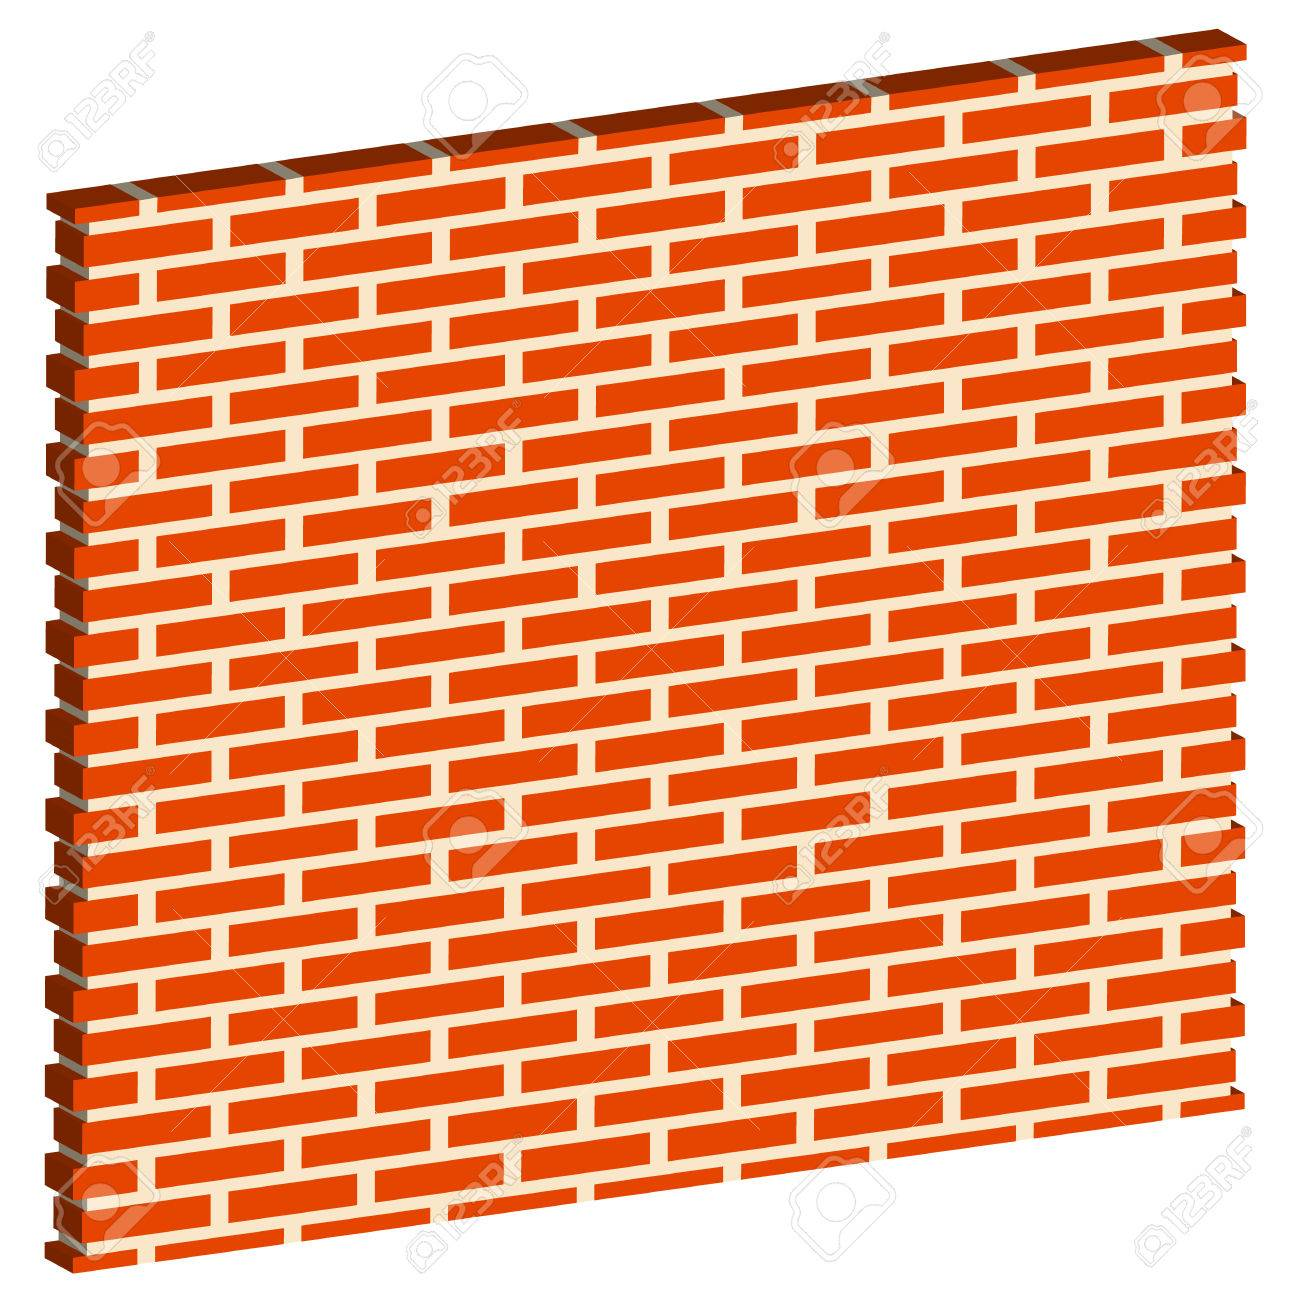 3D, Spatial Brick wall, brickwork with regular pattern isolated...